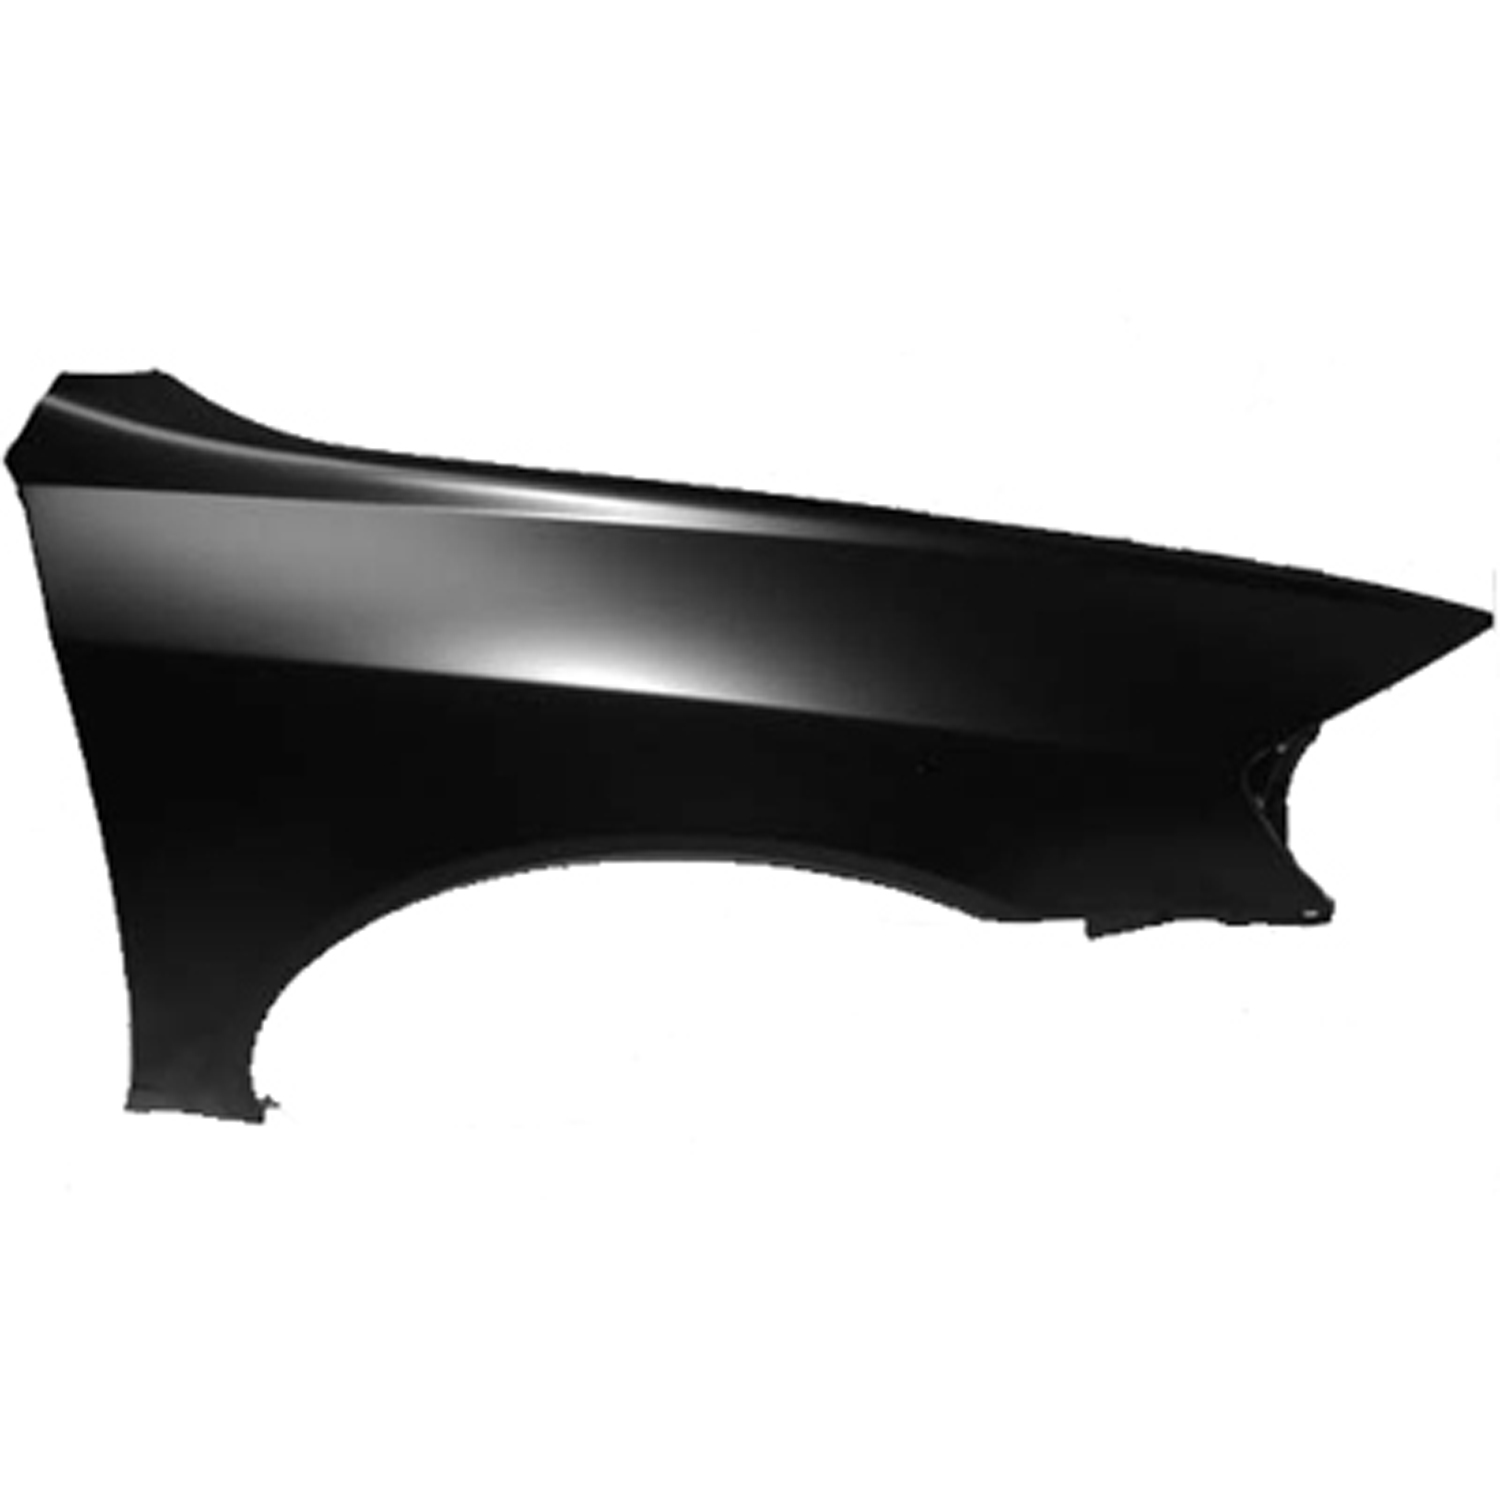 Right Passenger Side Primed Fender Assembly Replacement For 00-04 Toyota Avalon